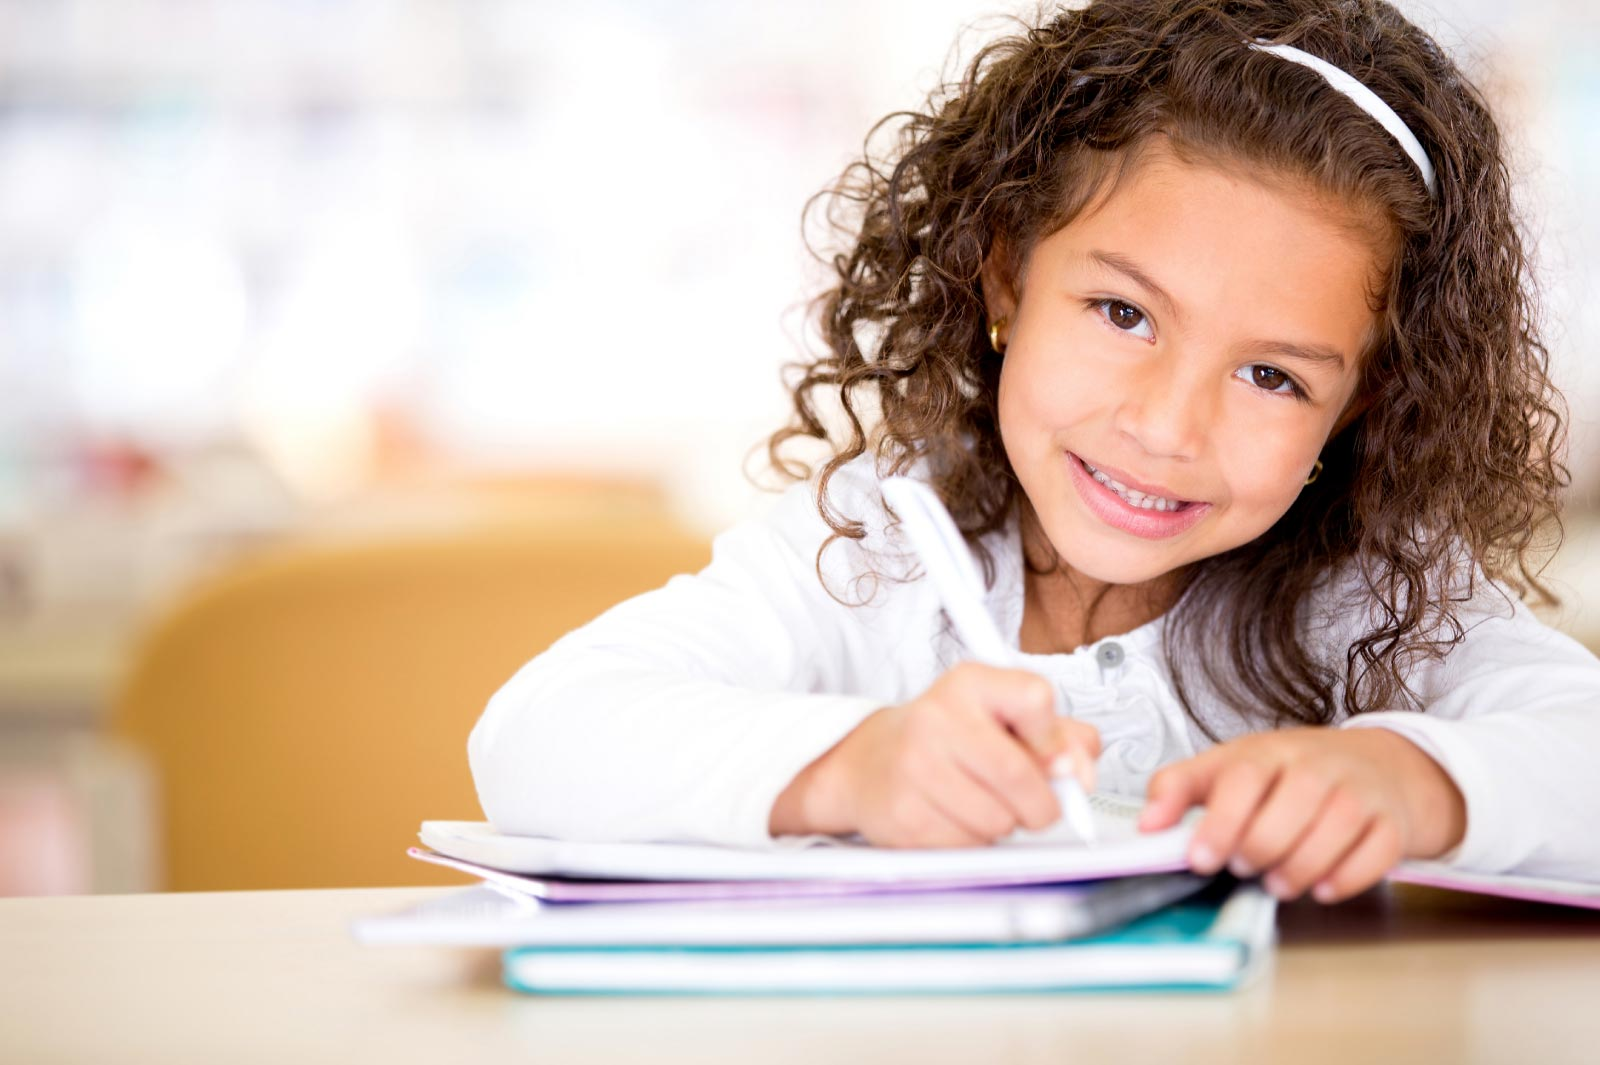 Little girl writing in a notebook.